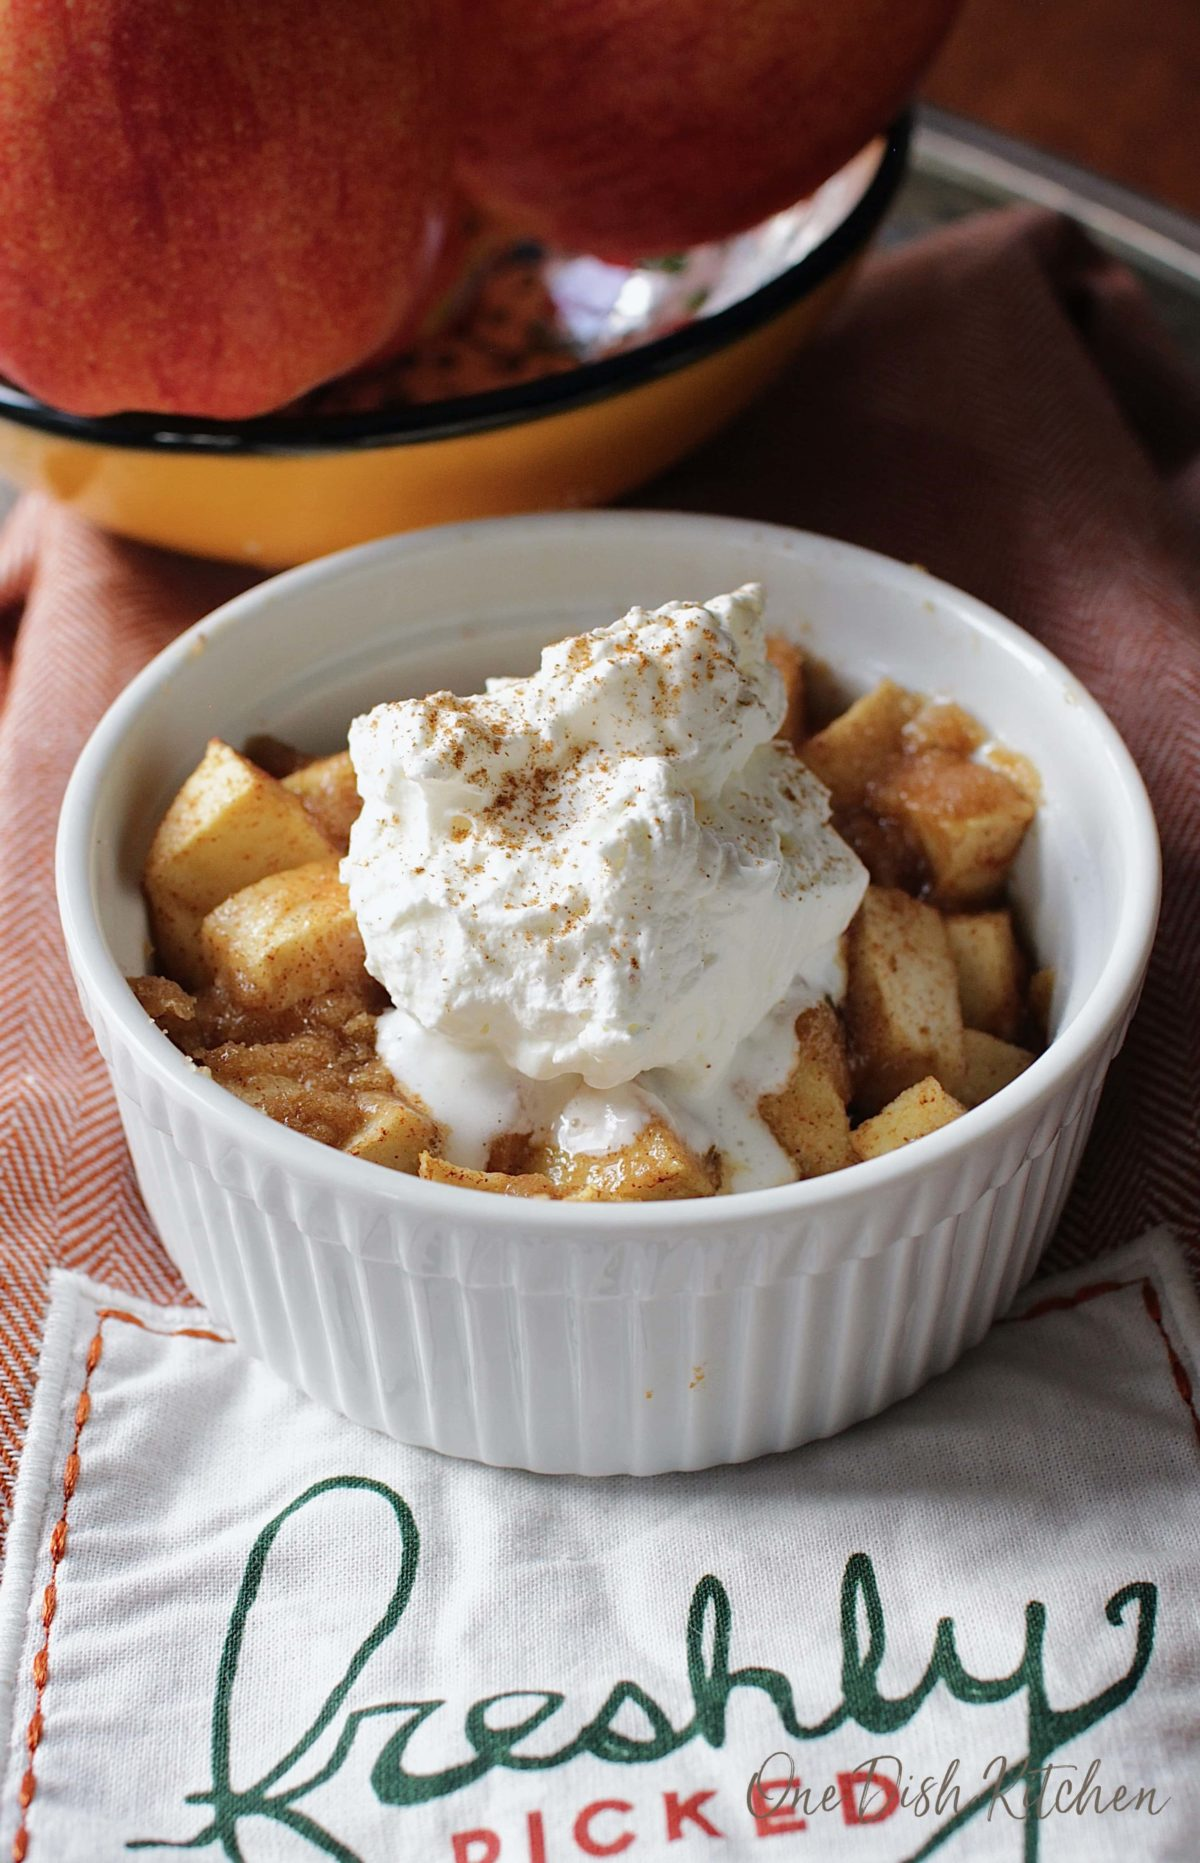 Apple crisp in a ramekin topped with whipped cream and dusted with cinnamon